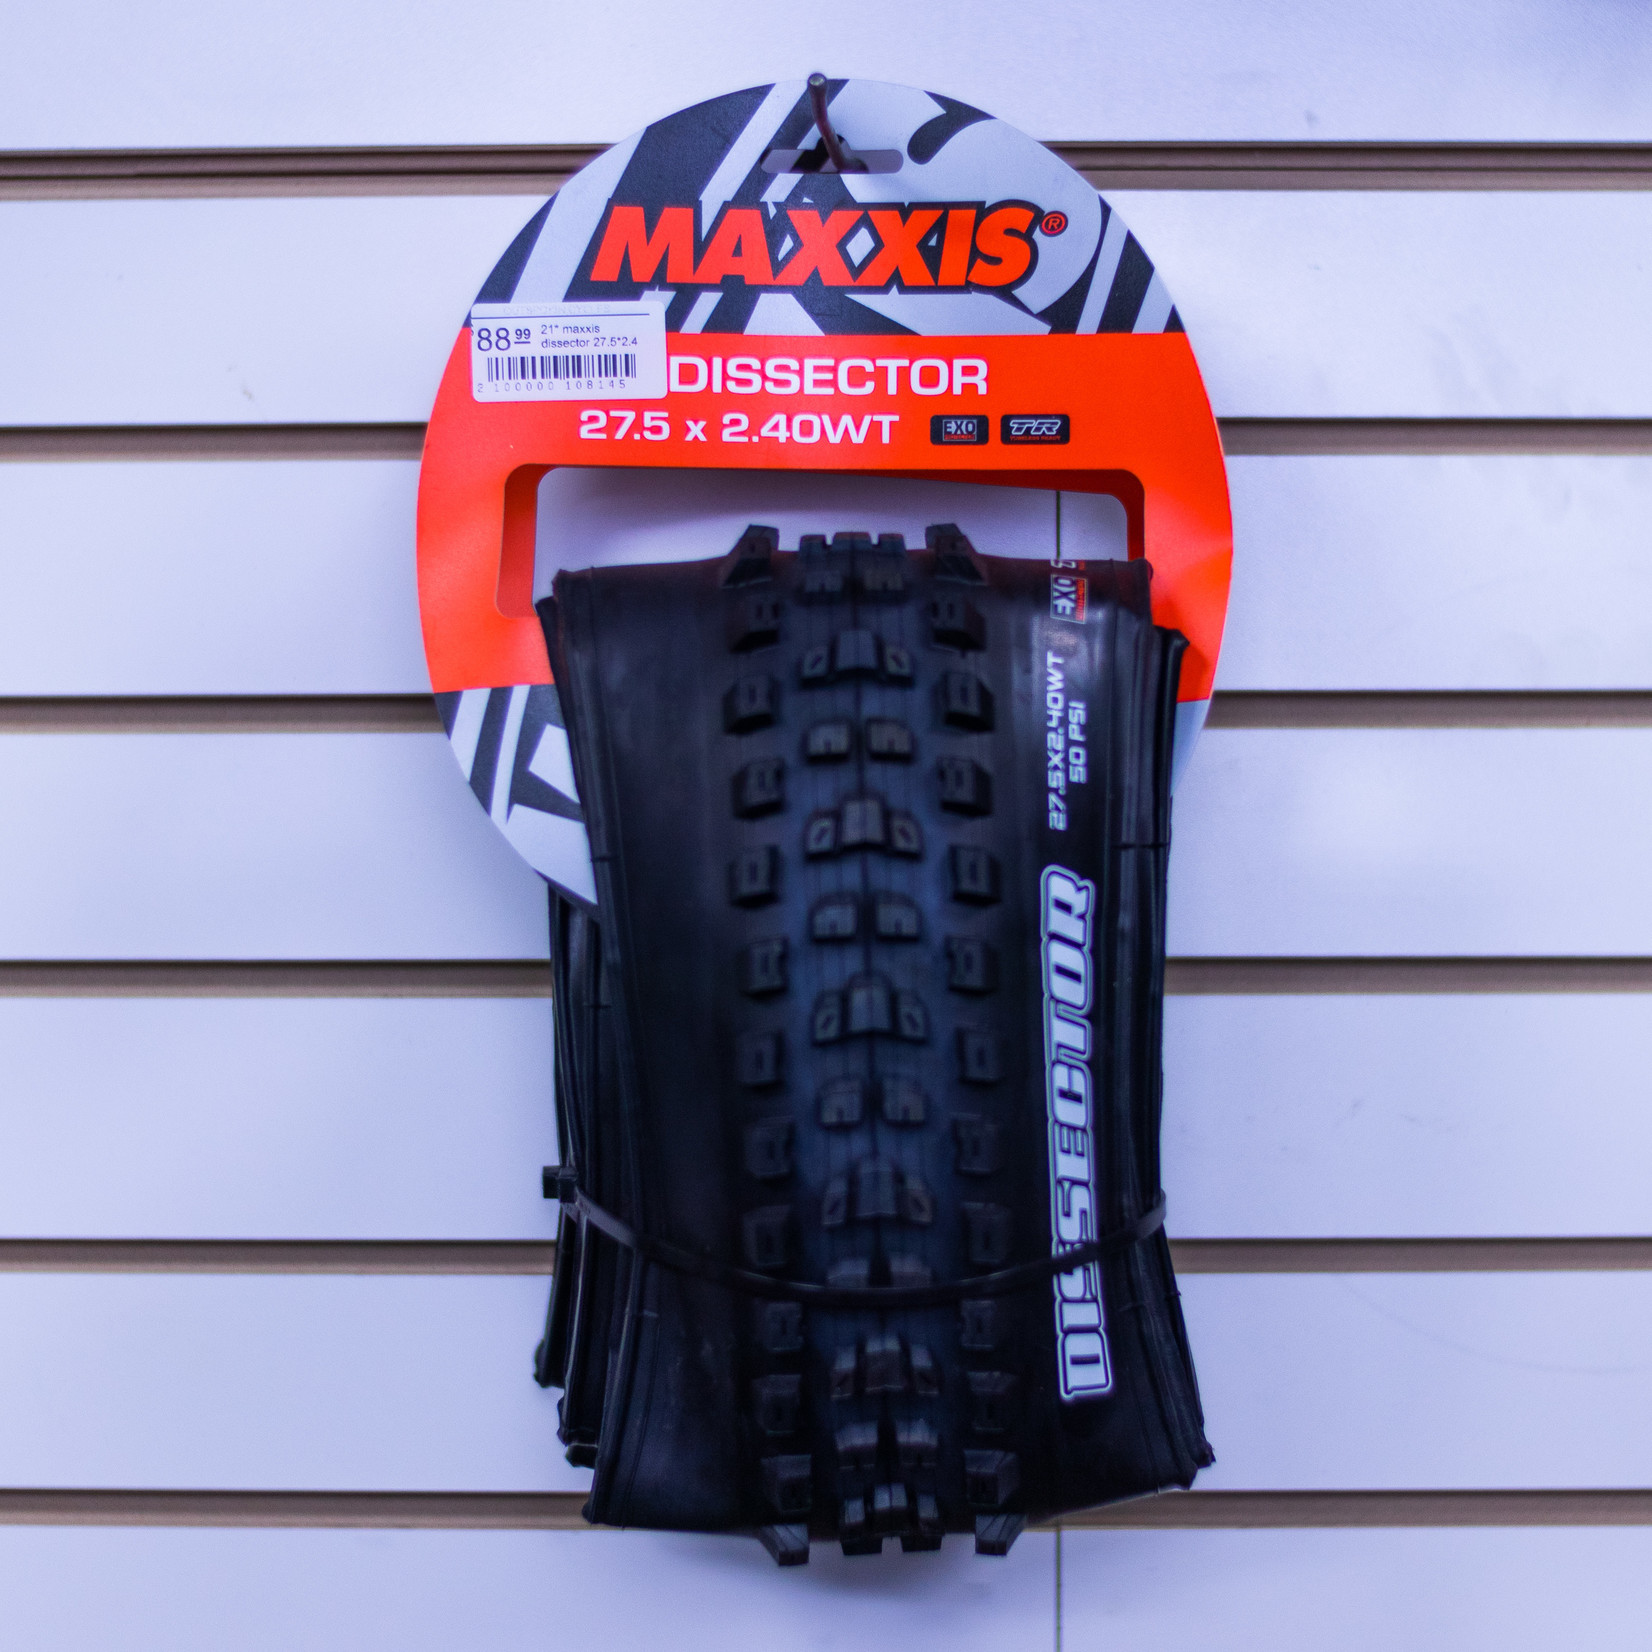 Maxxis Dissector 27.5 x 2.40WT